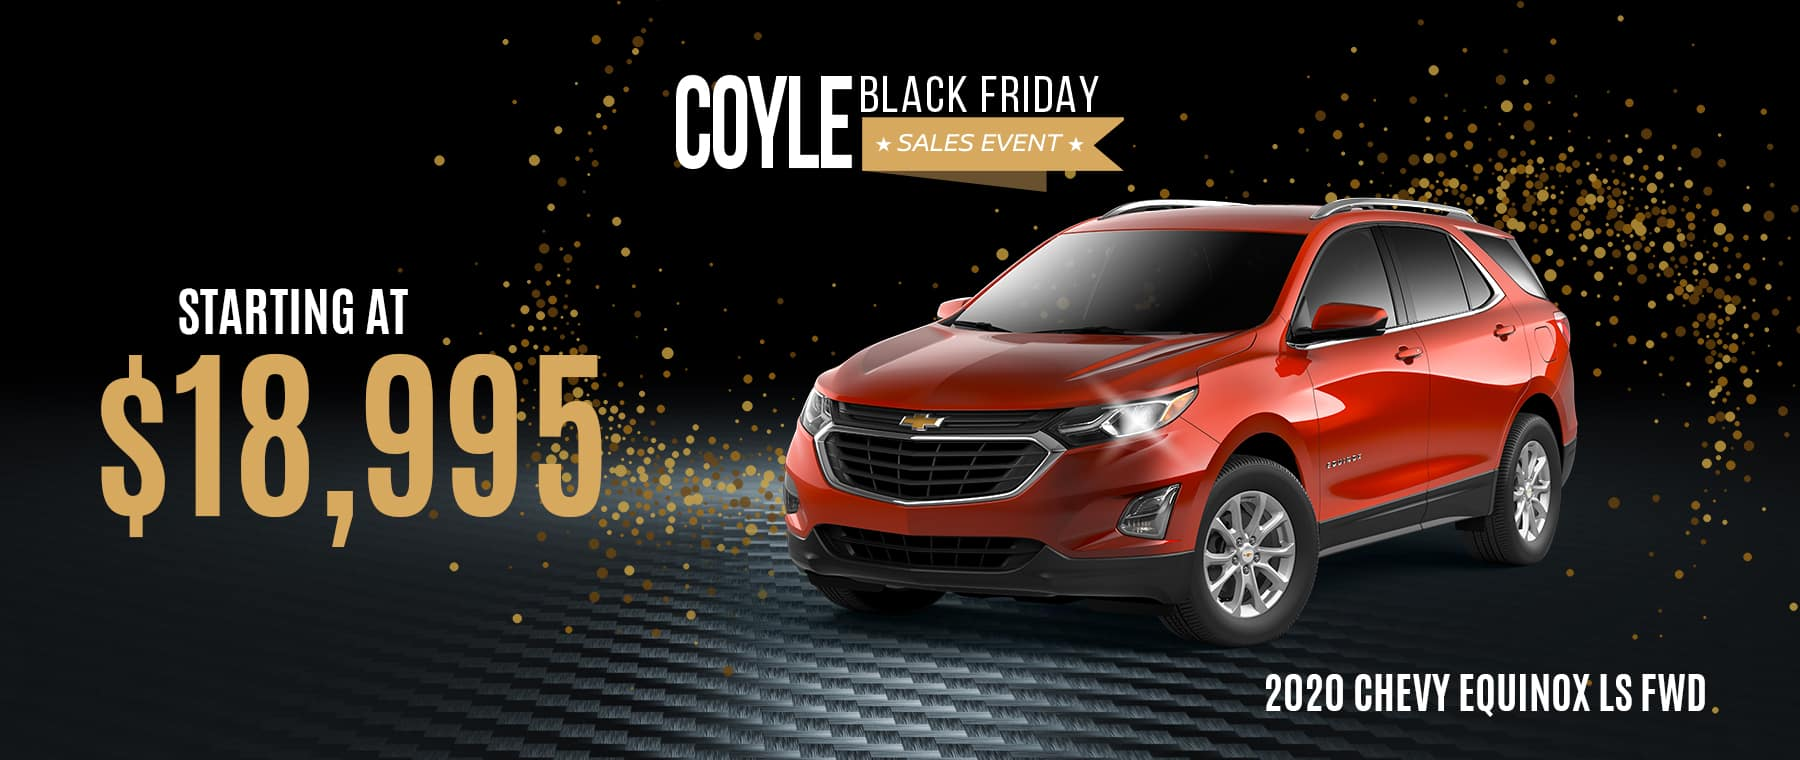 Special Pricing on a New Chevy Equinox near Louisville, Kentucky